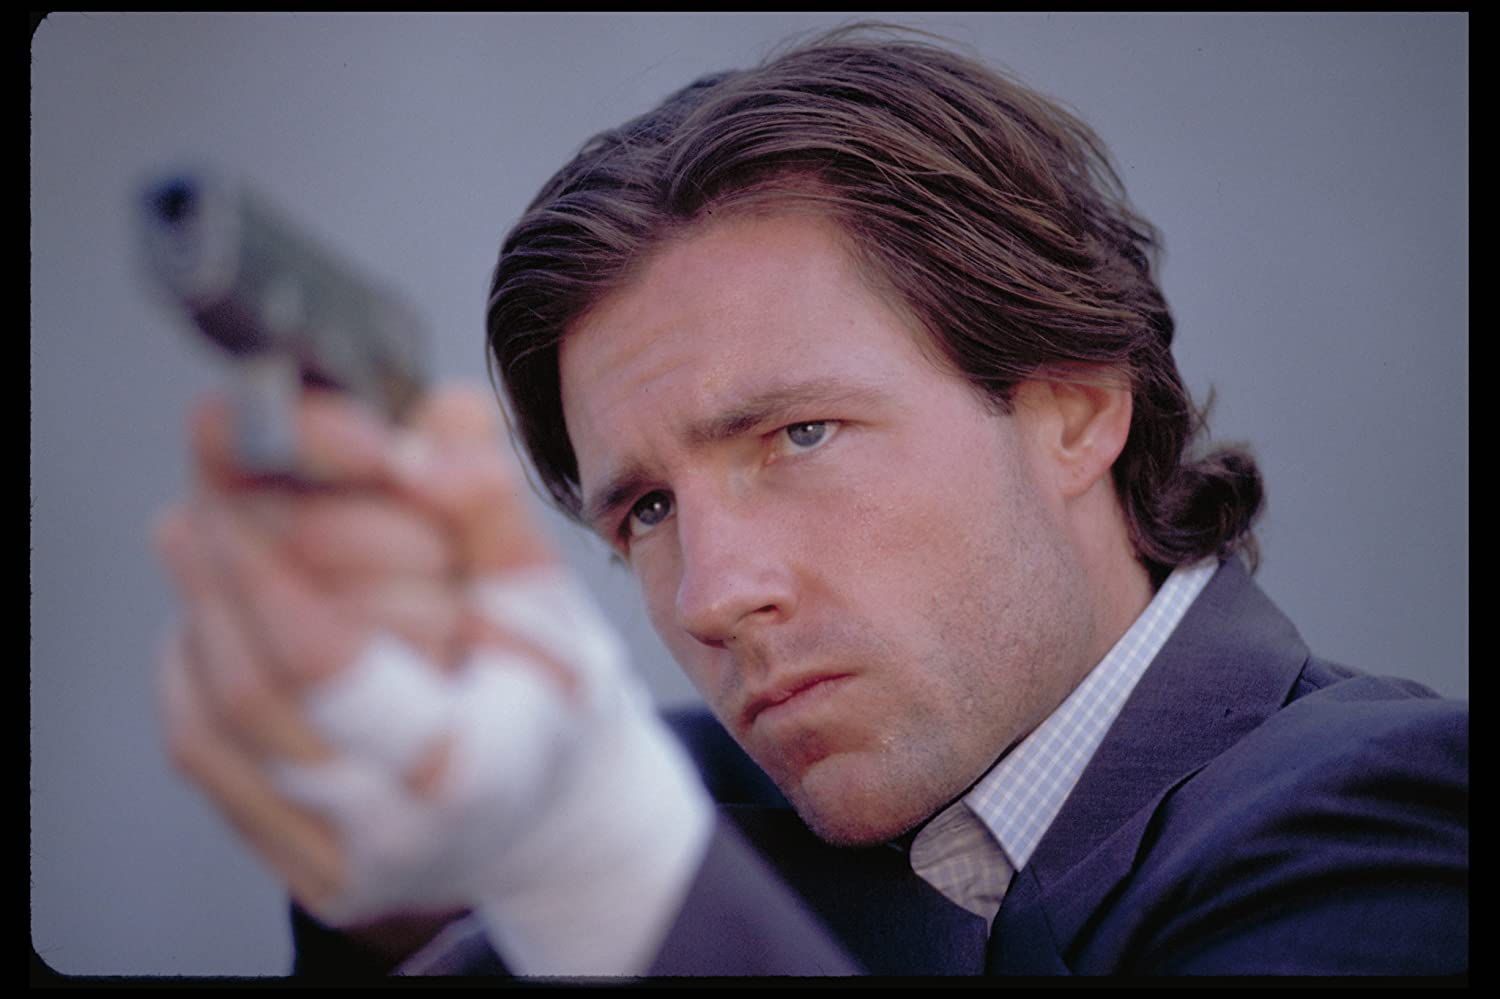 Edward Burns in 15 Minutes (2001)